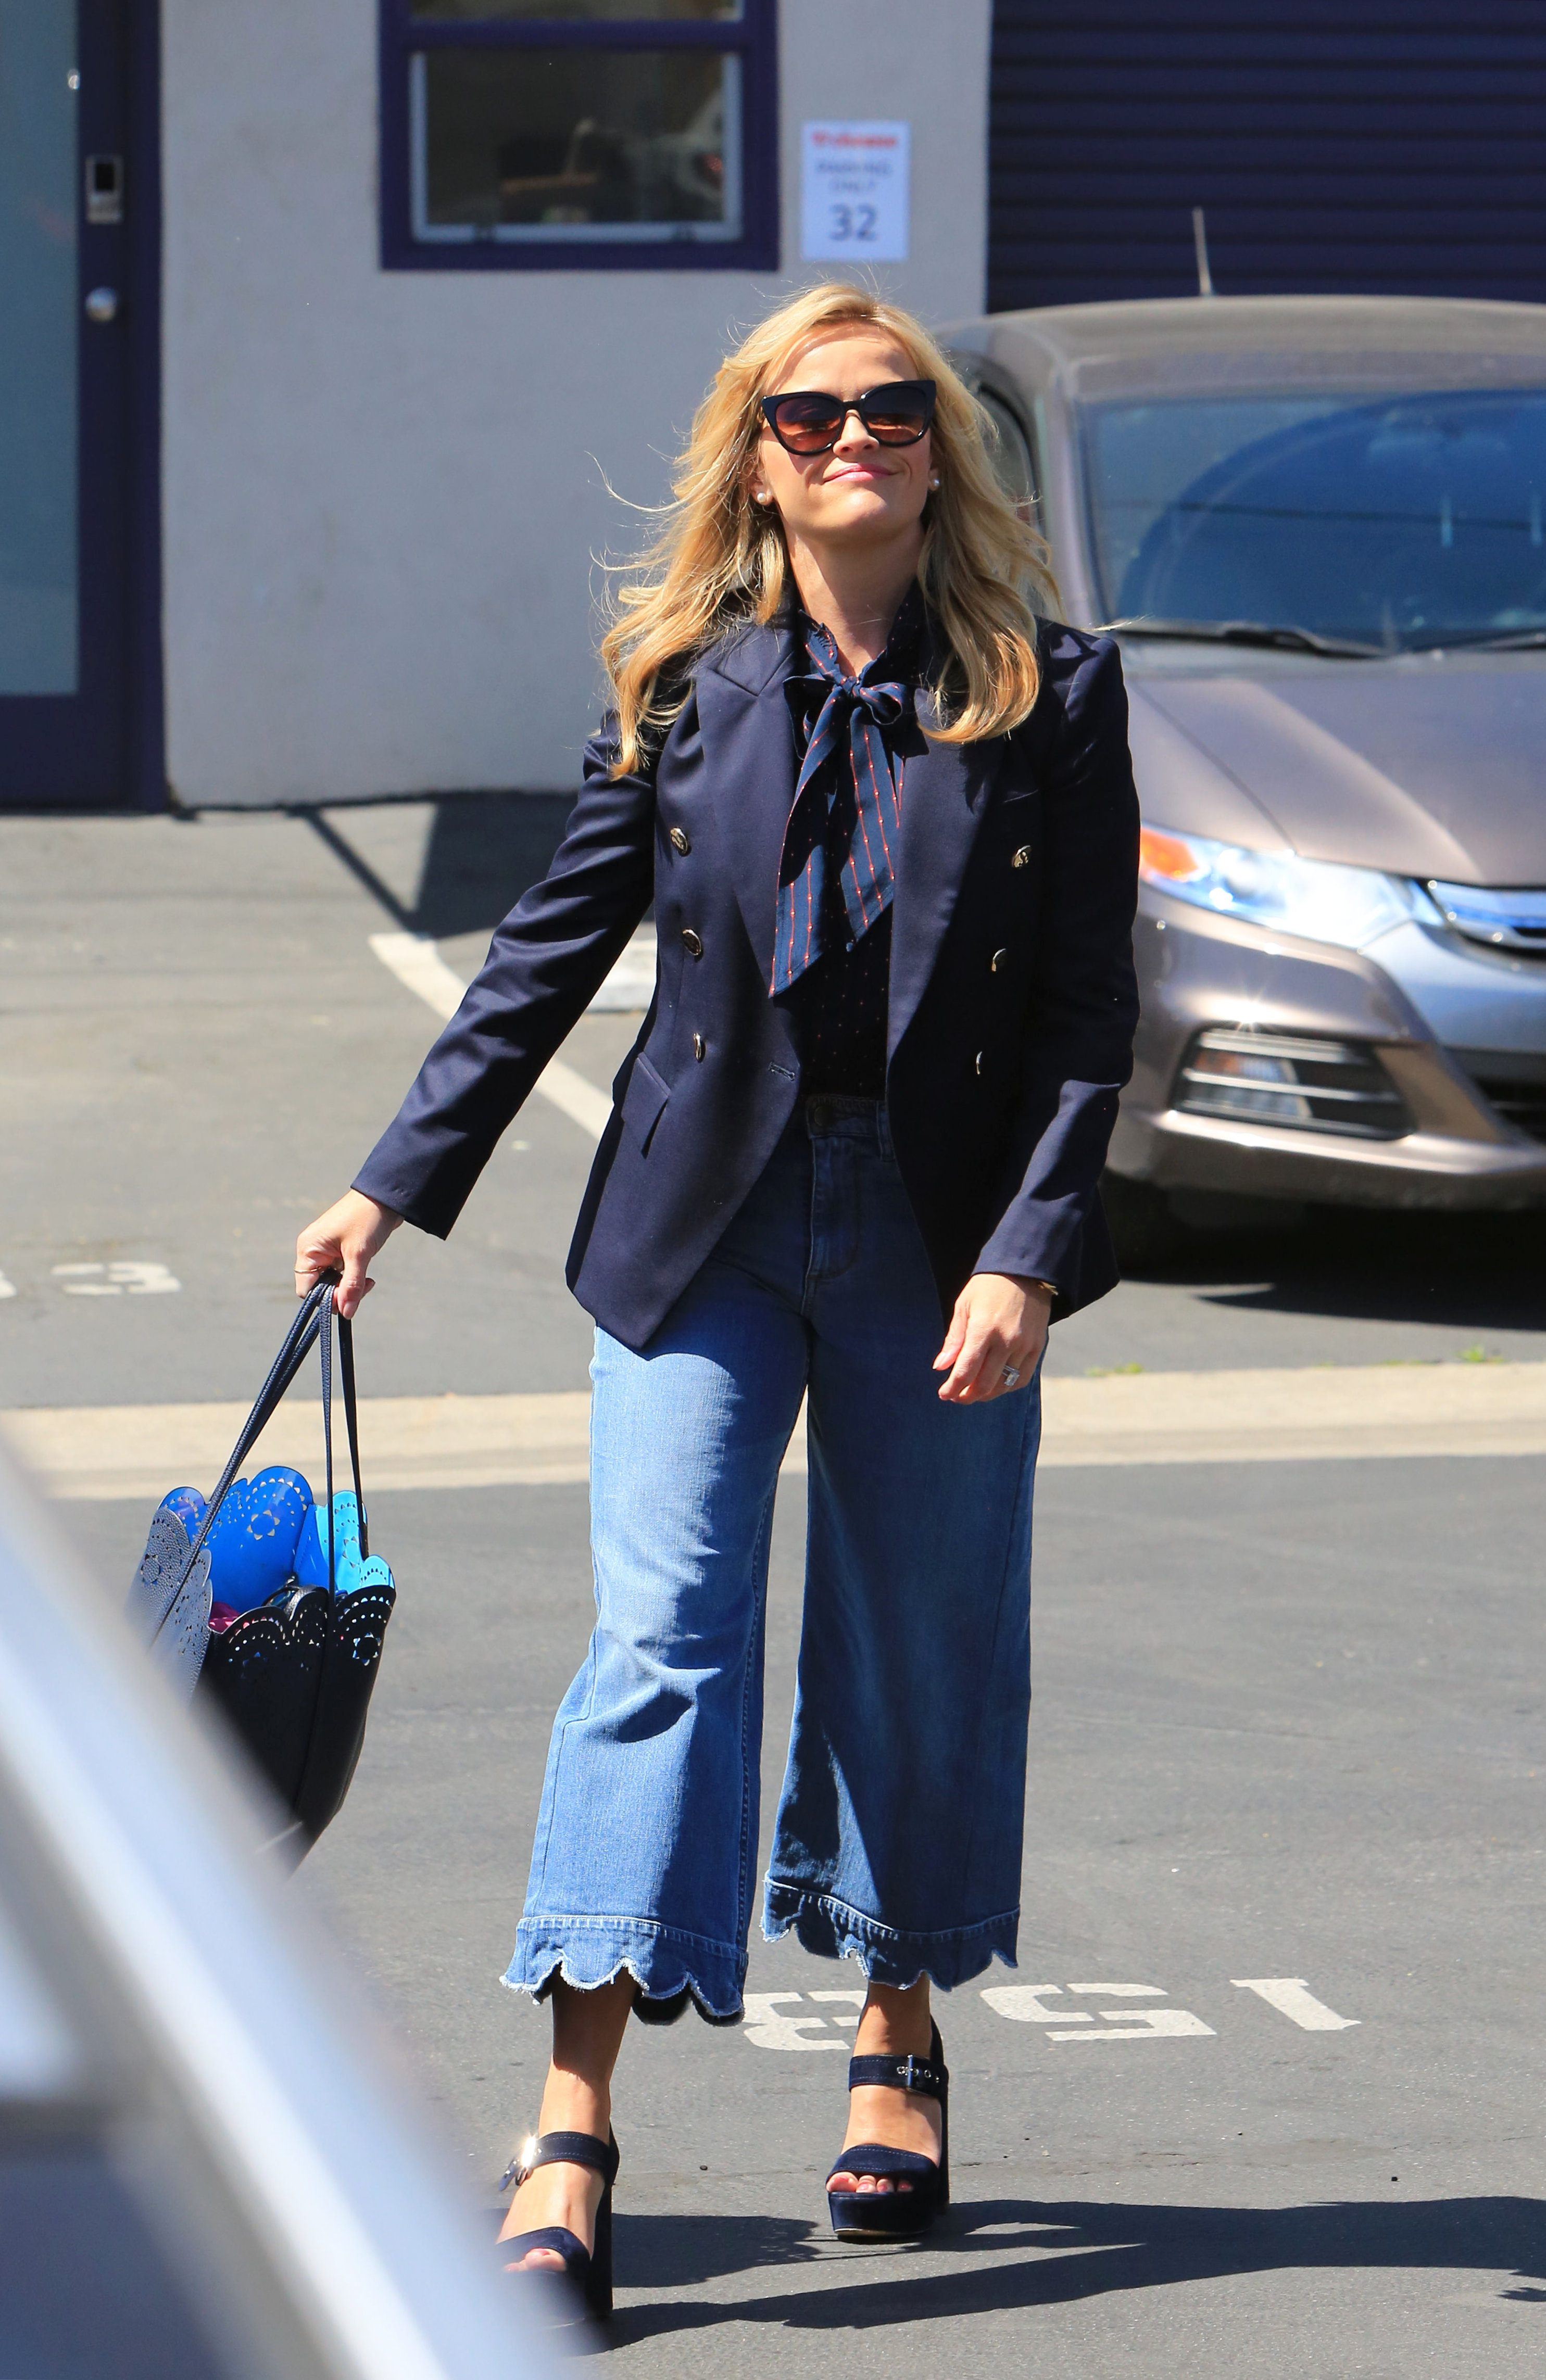 x17_reese_witherspoon_denim_041618_06